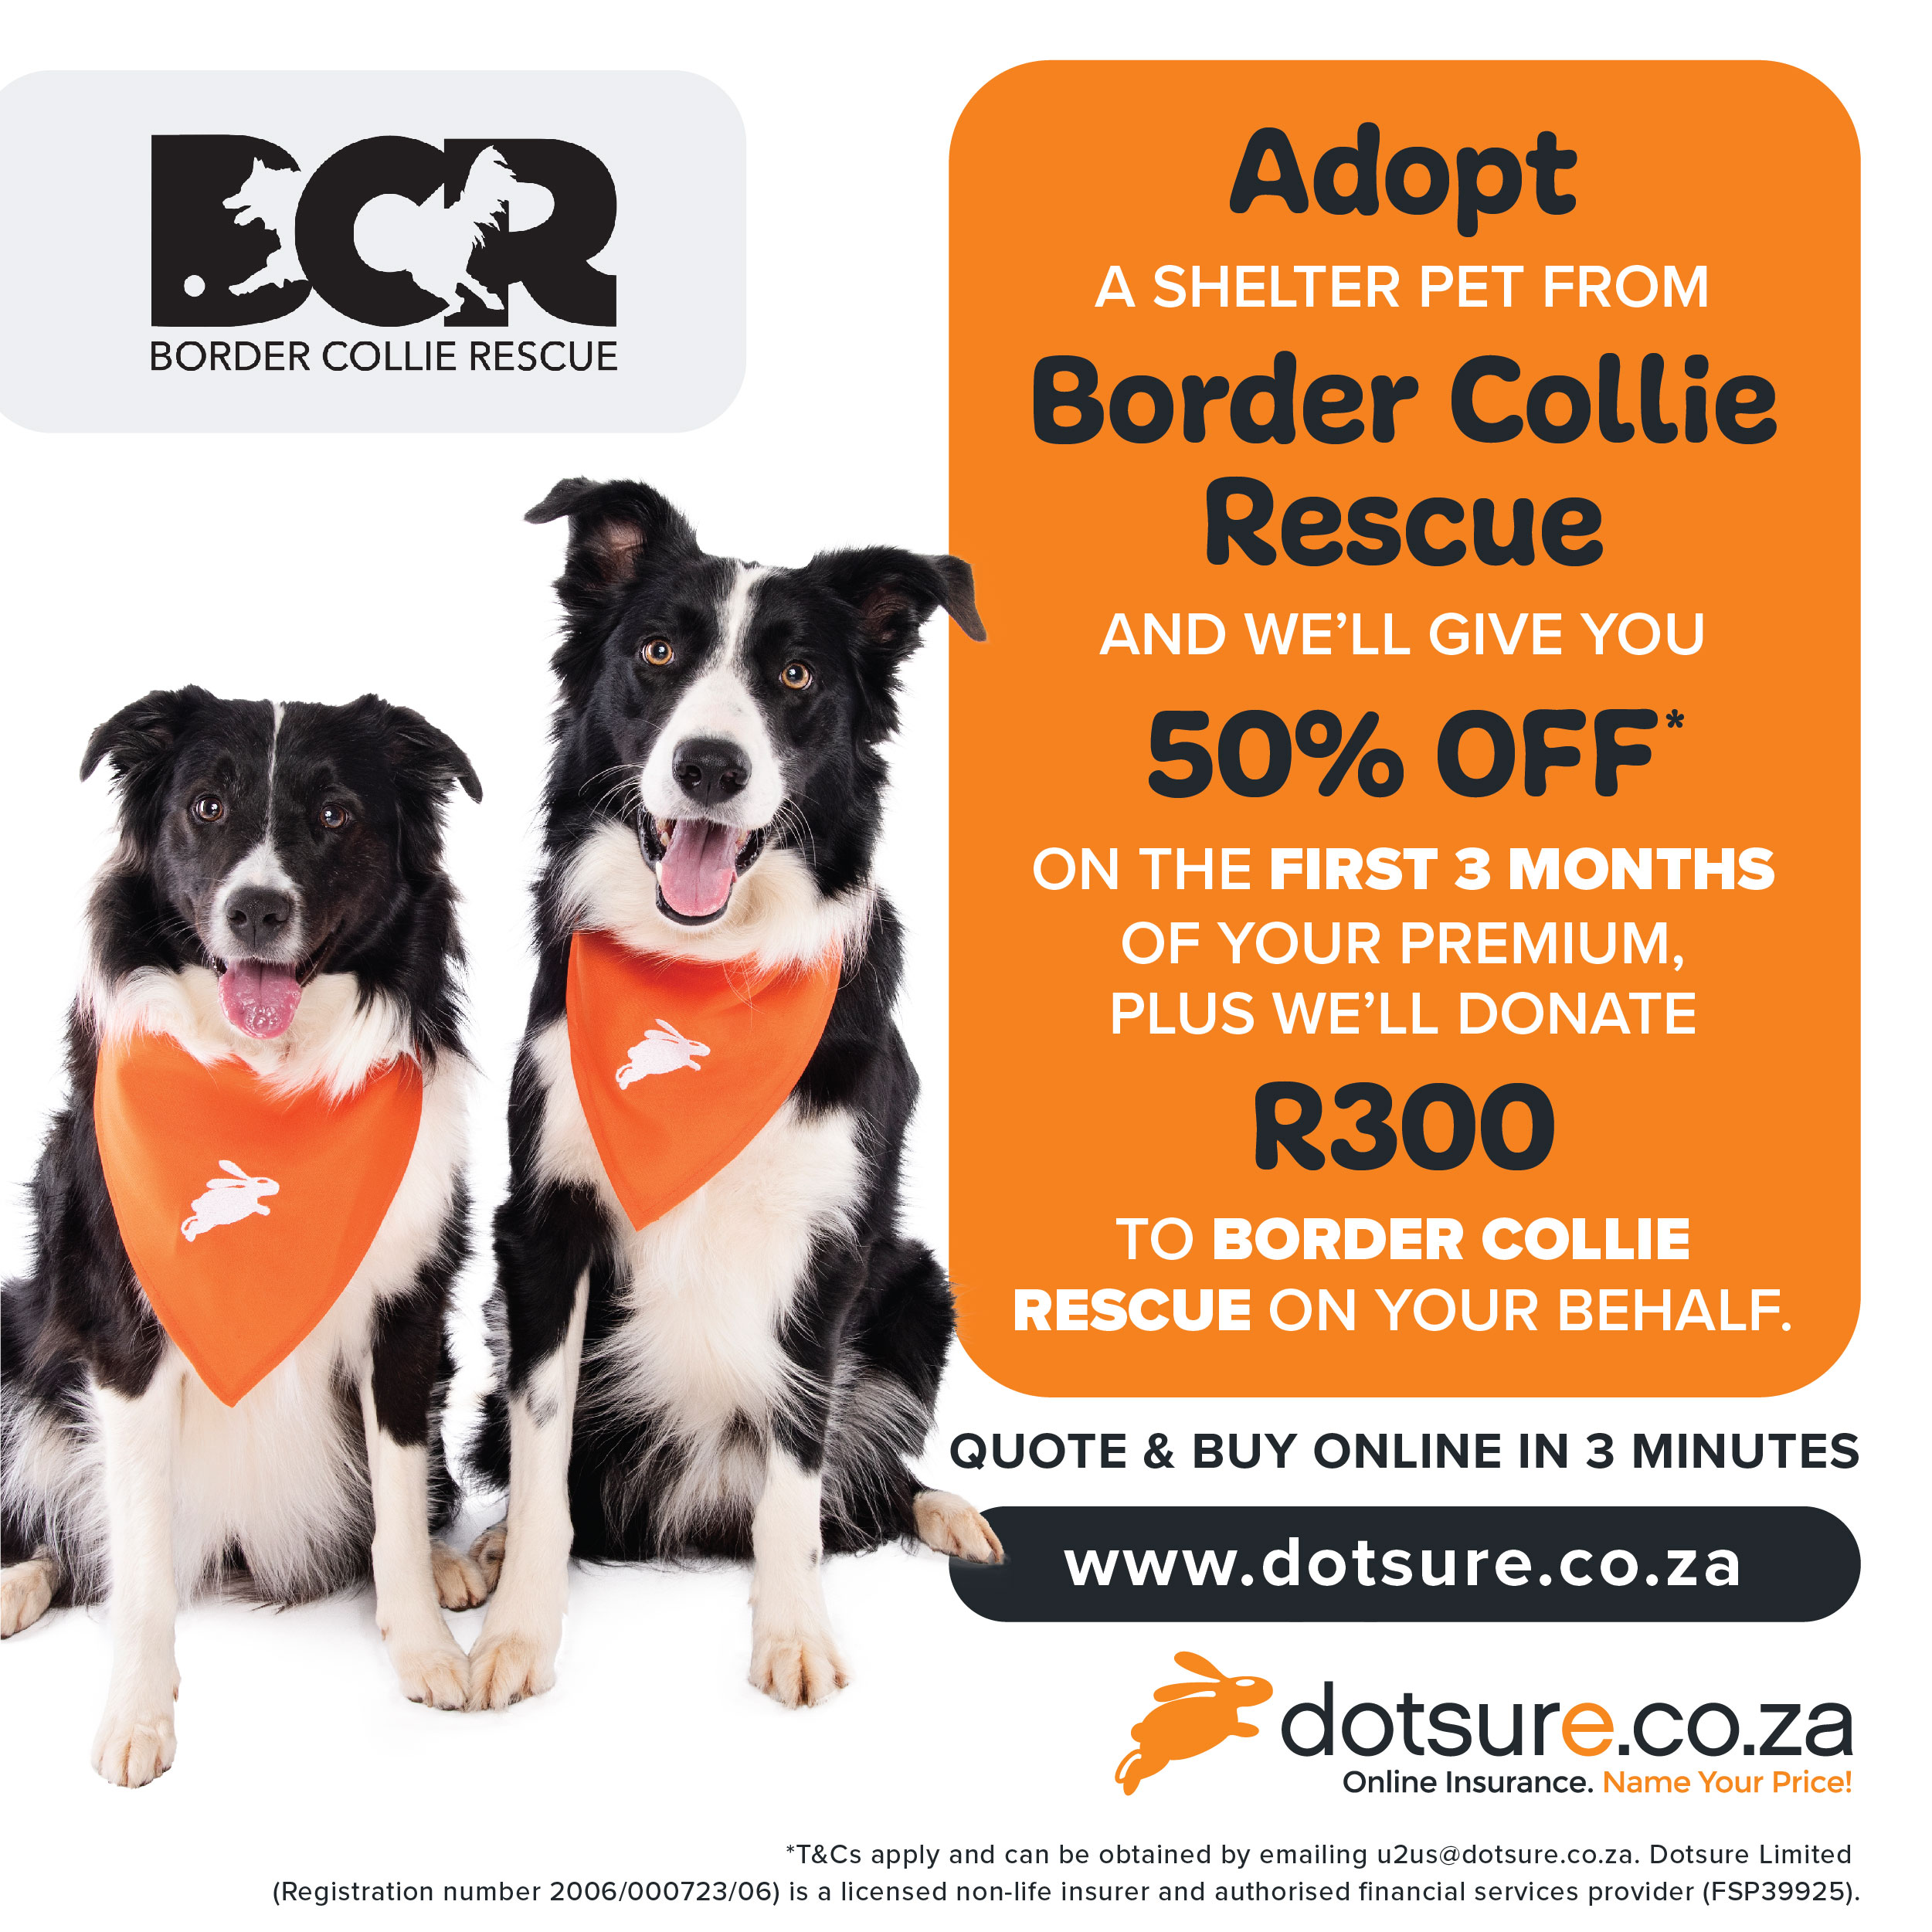 20 OFF YOUR FIRST 20 PREMIUMS WITH DOTSURE – Border Collie Rescue